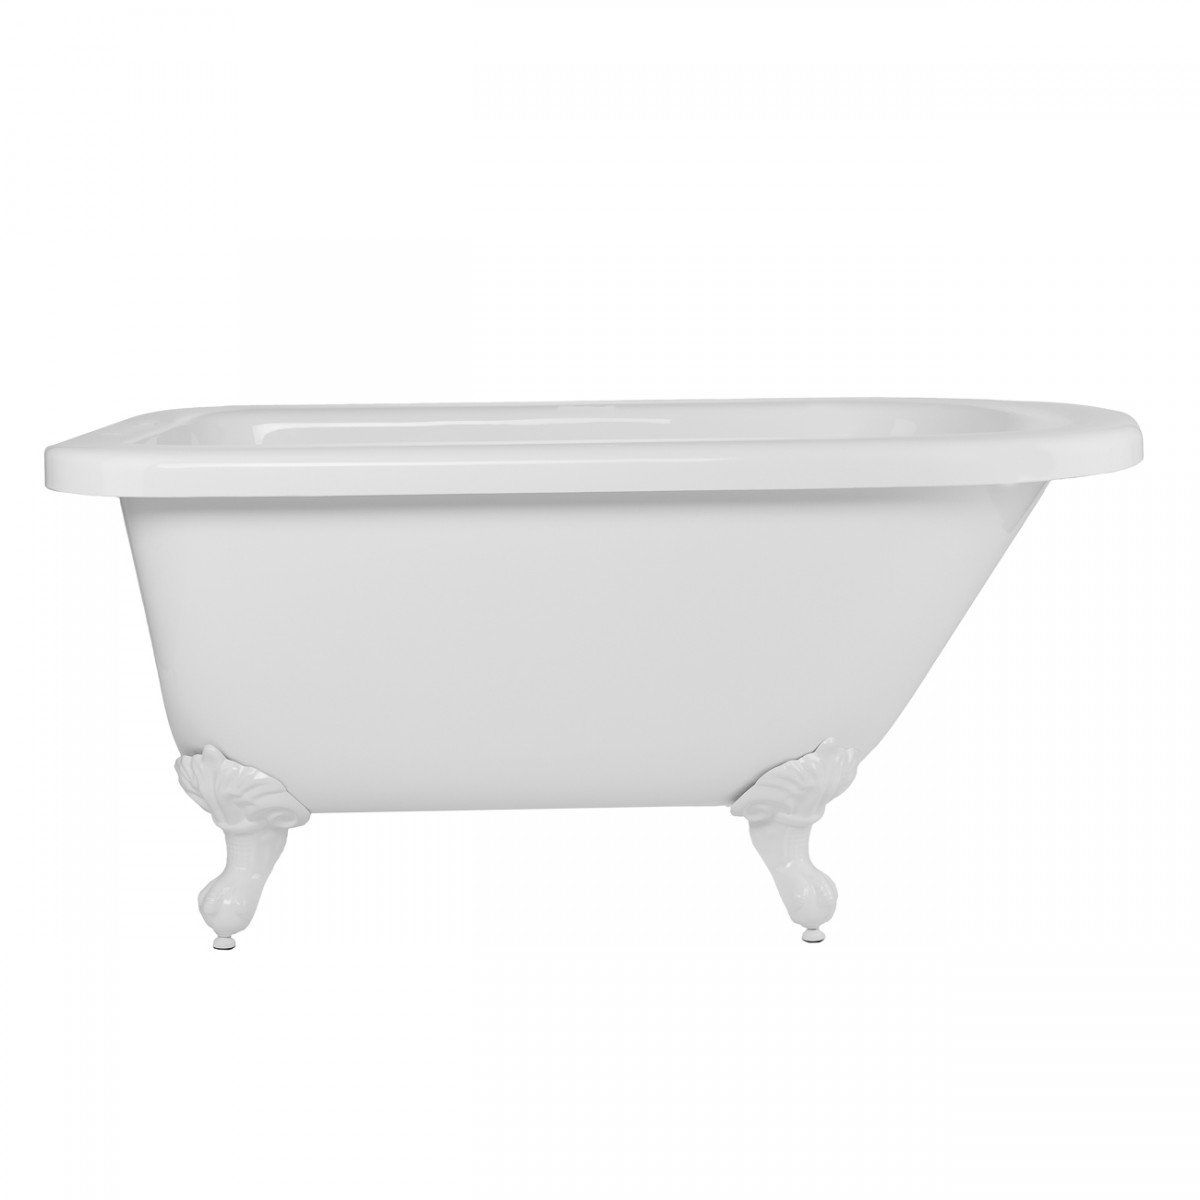 Savanna 54 Inch Acrylic Classic Rolltop Clawfoot Tub Package With